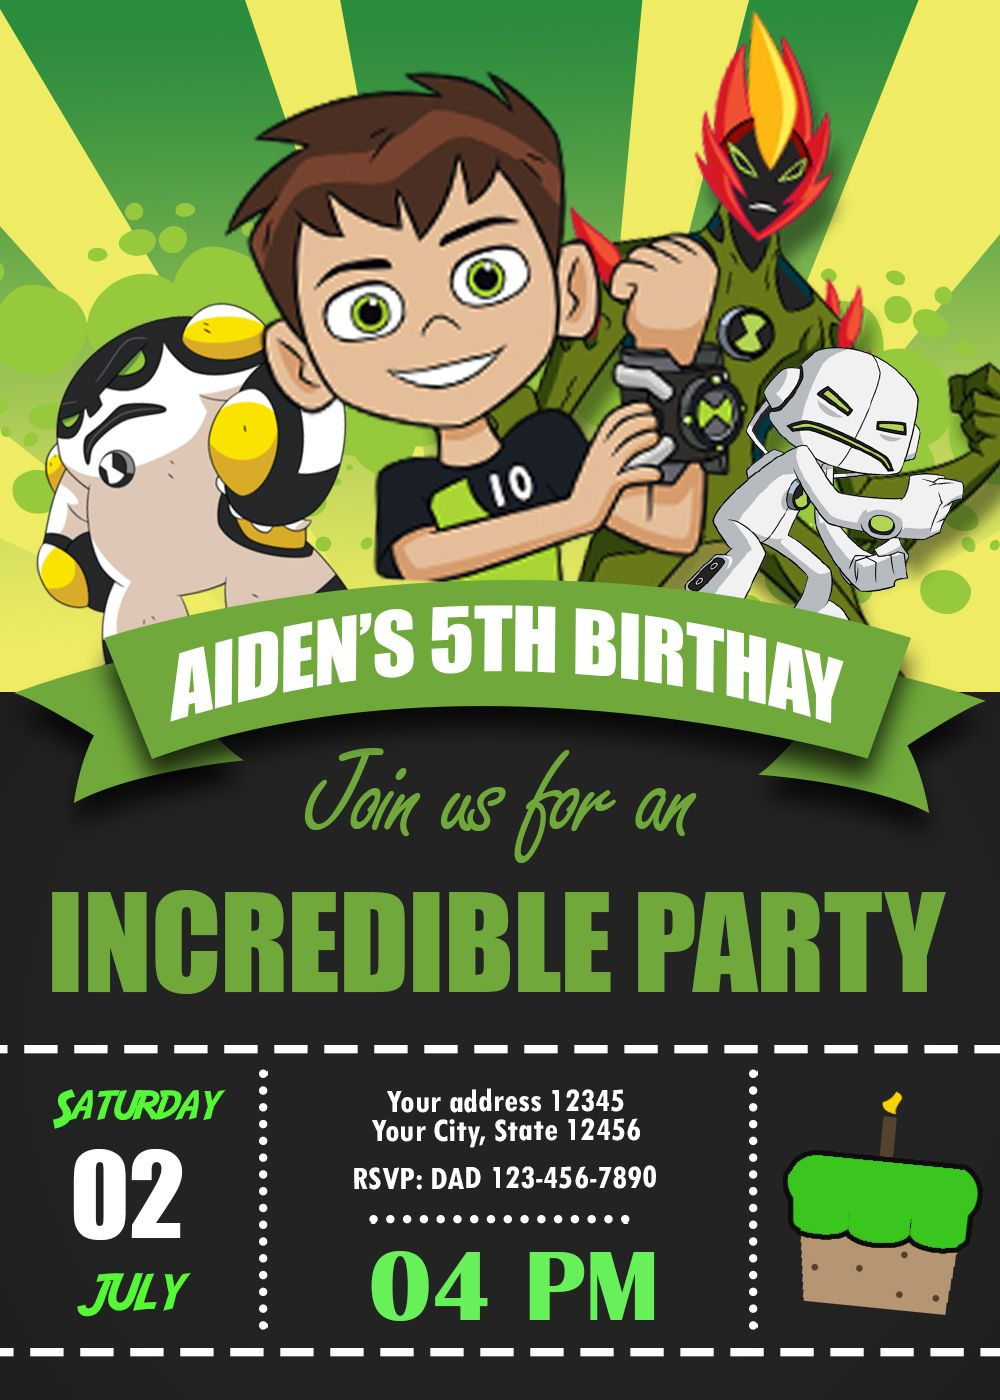 ben 10 birthday party invitation 2